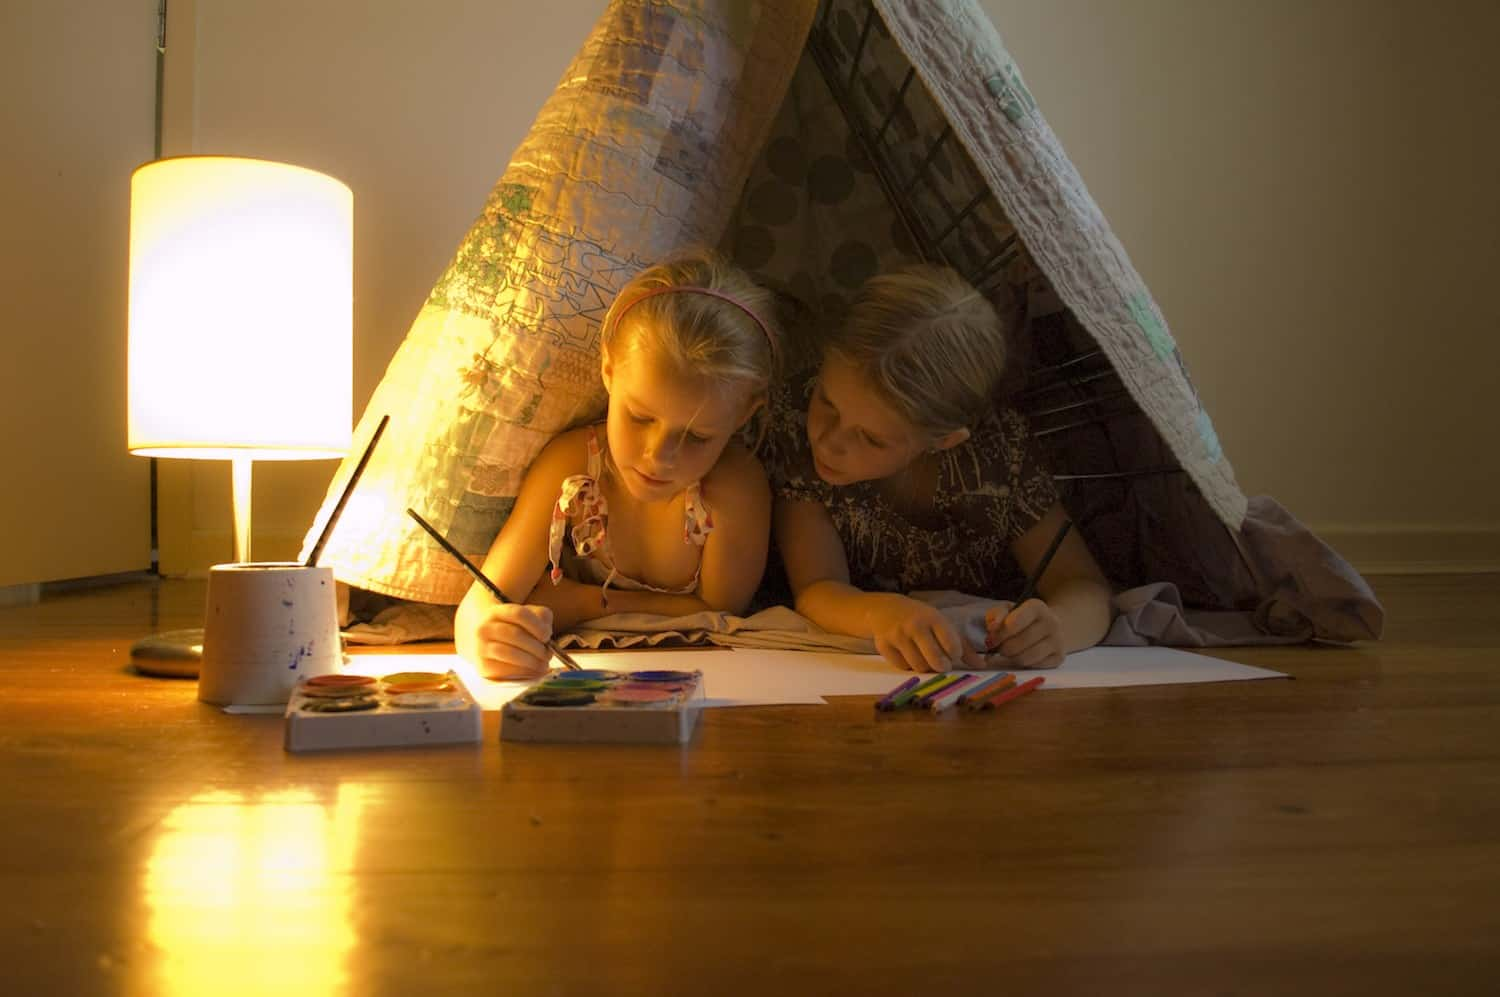 Two girls lay in a teepee doing art work